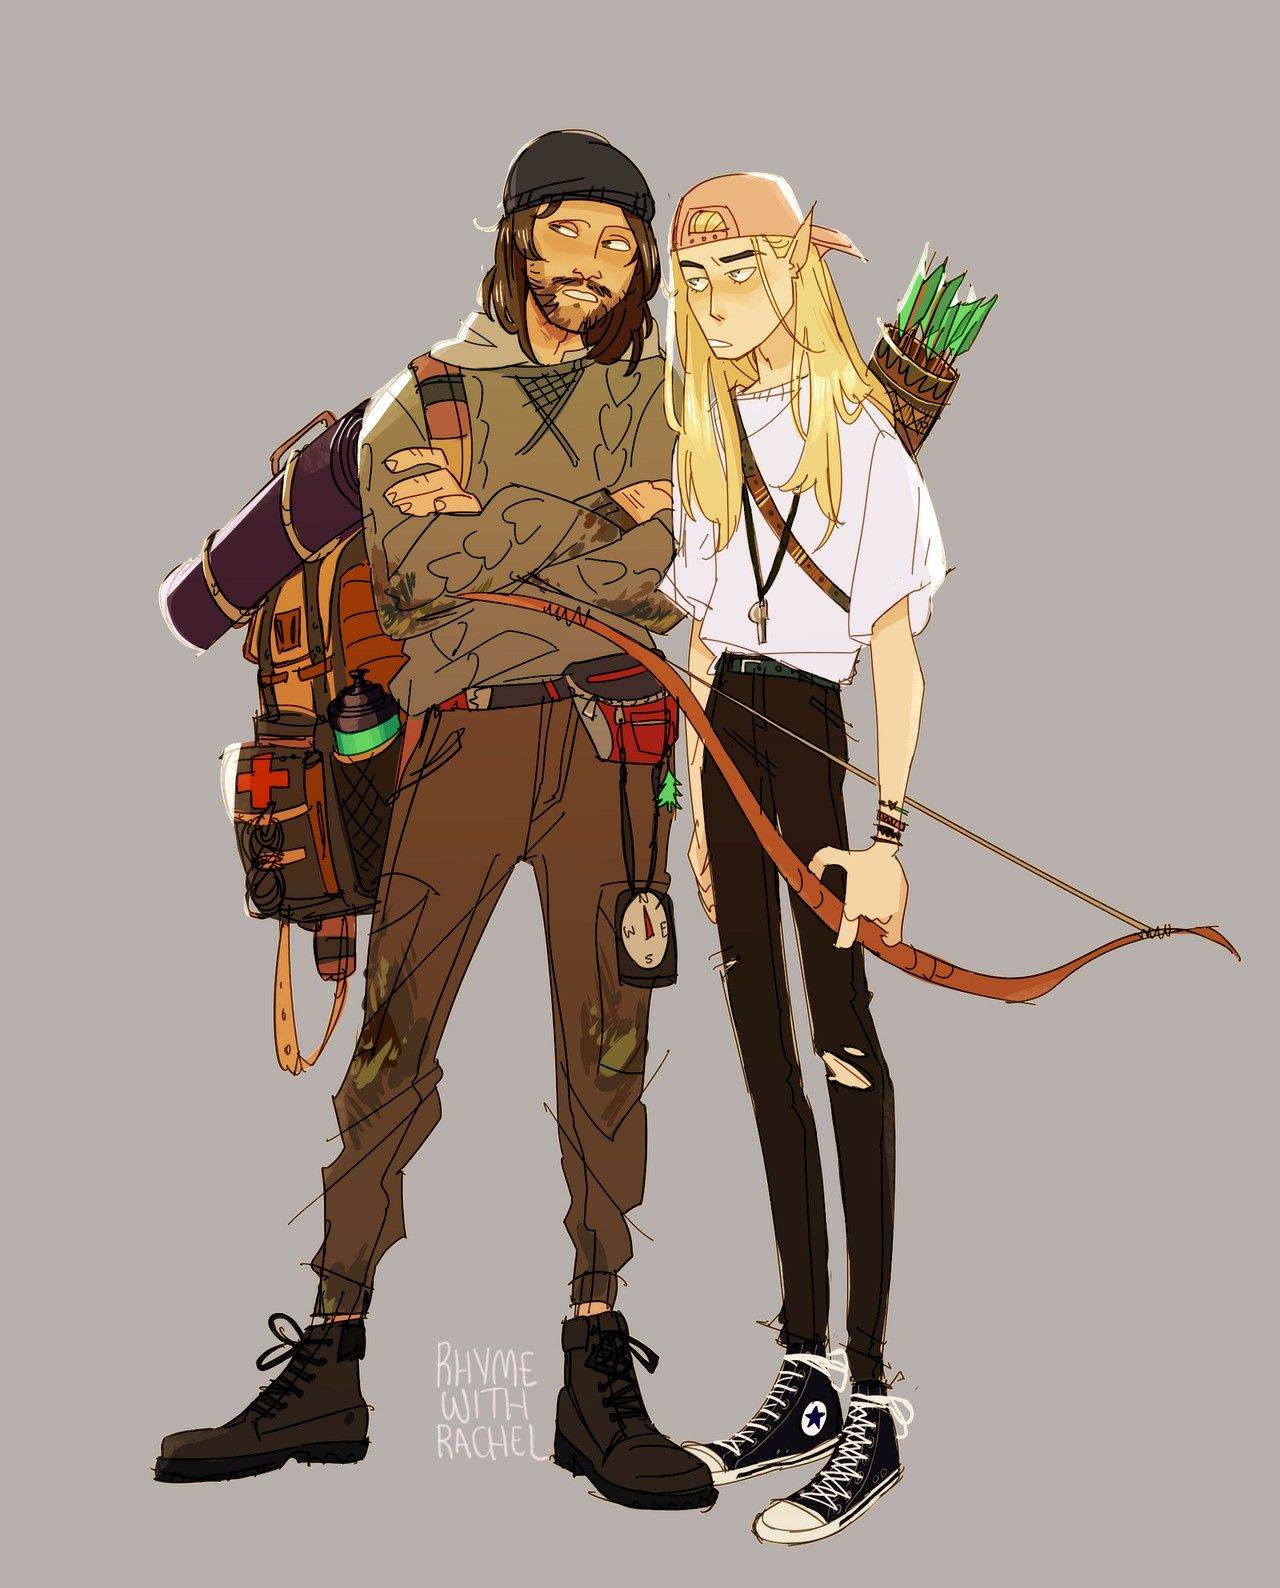 Pin by Kate Morin Staker on Lord of the Rings | Legolas ...